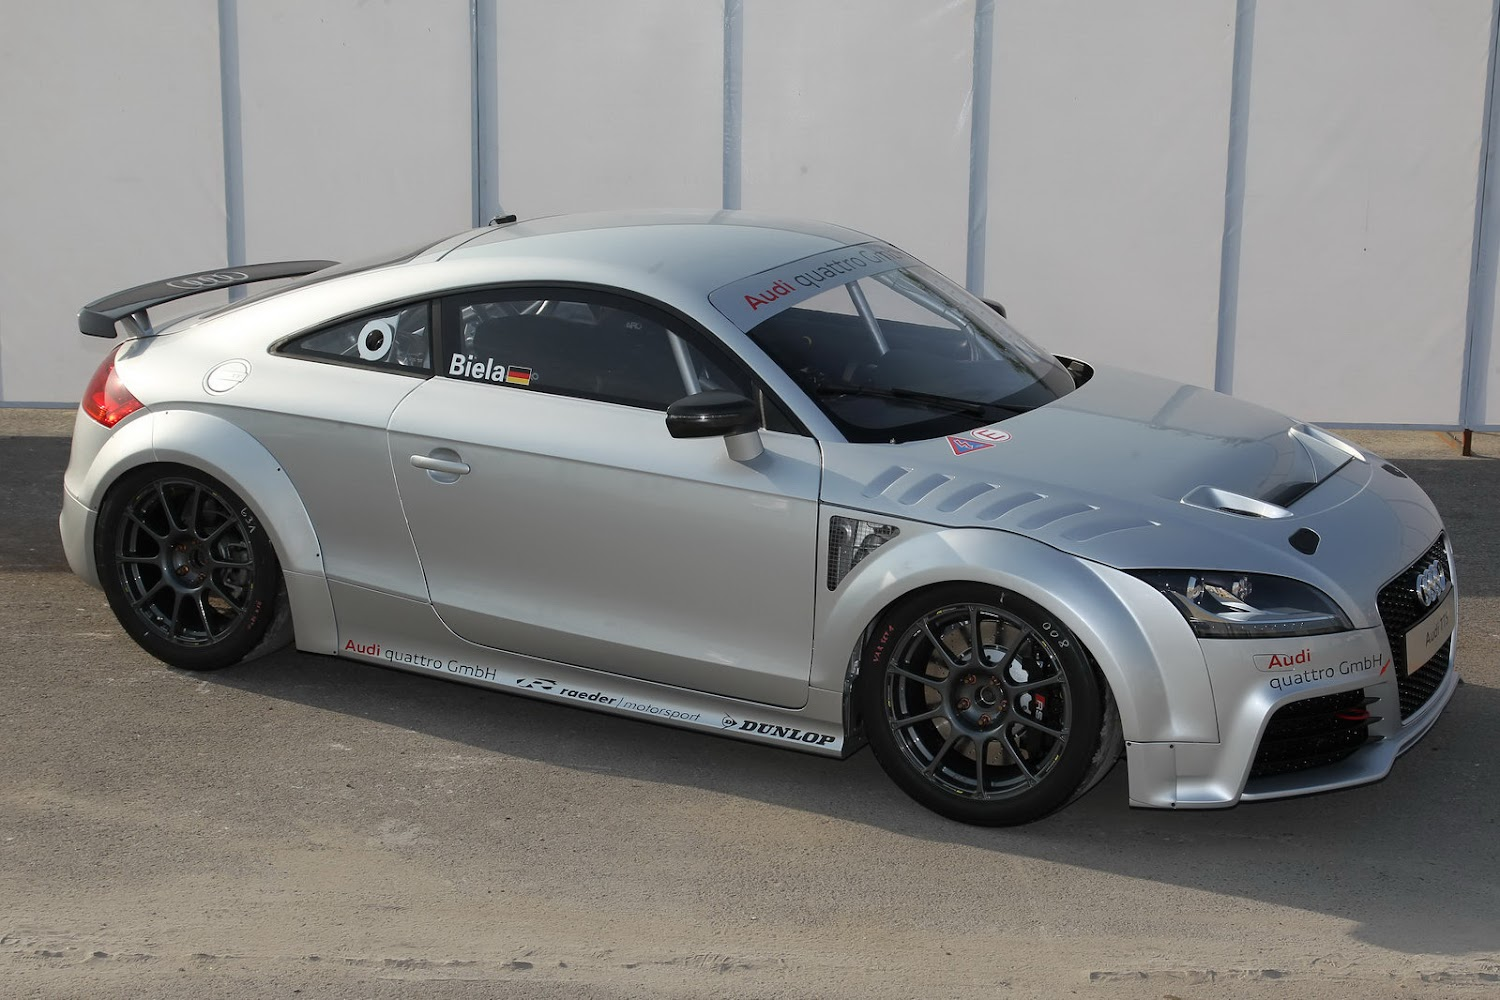 Audi TT GT4 with 340HP Concept